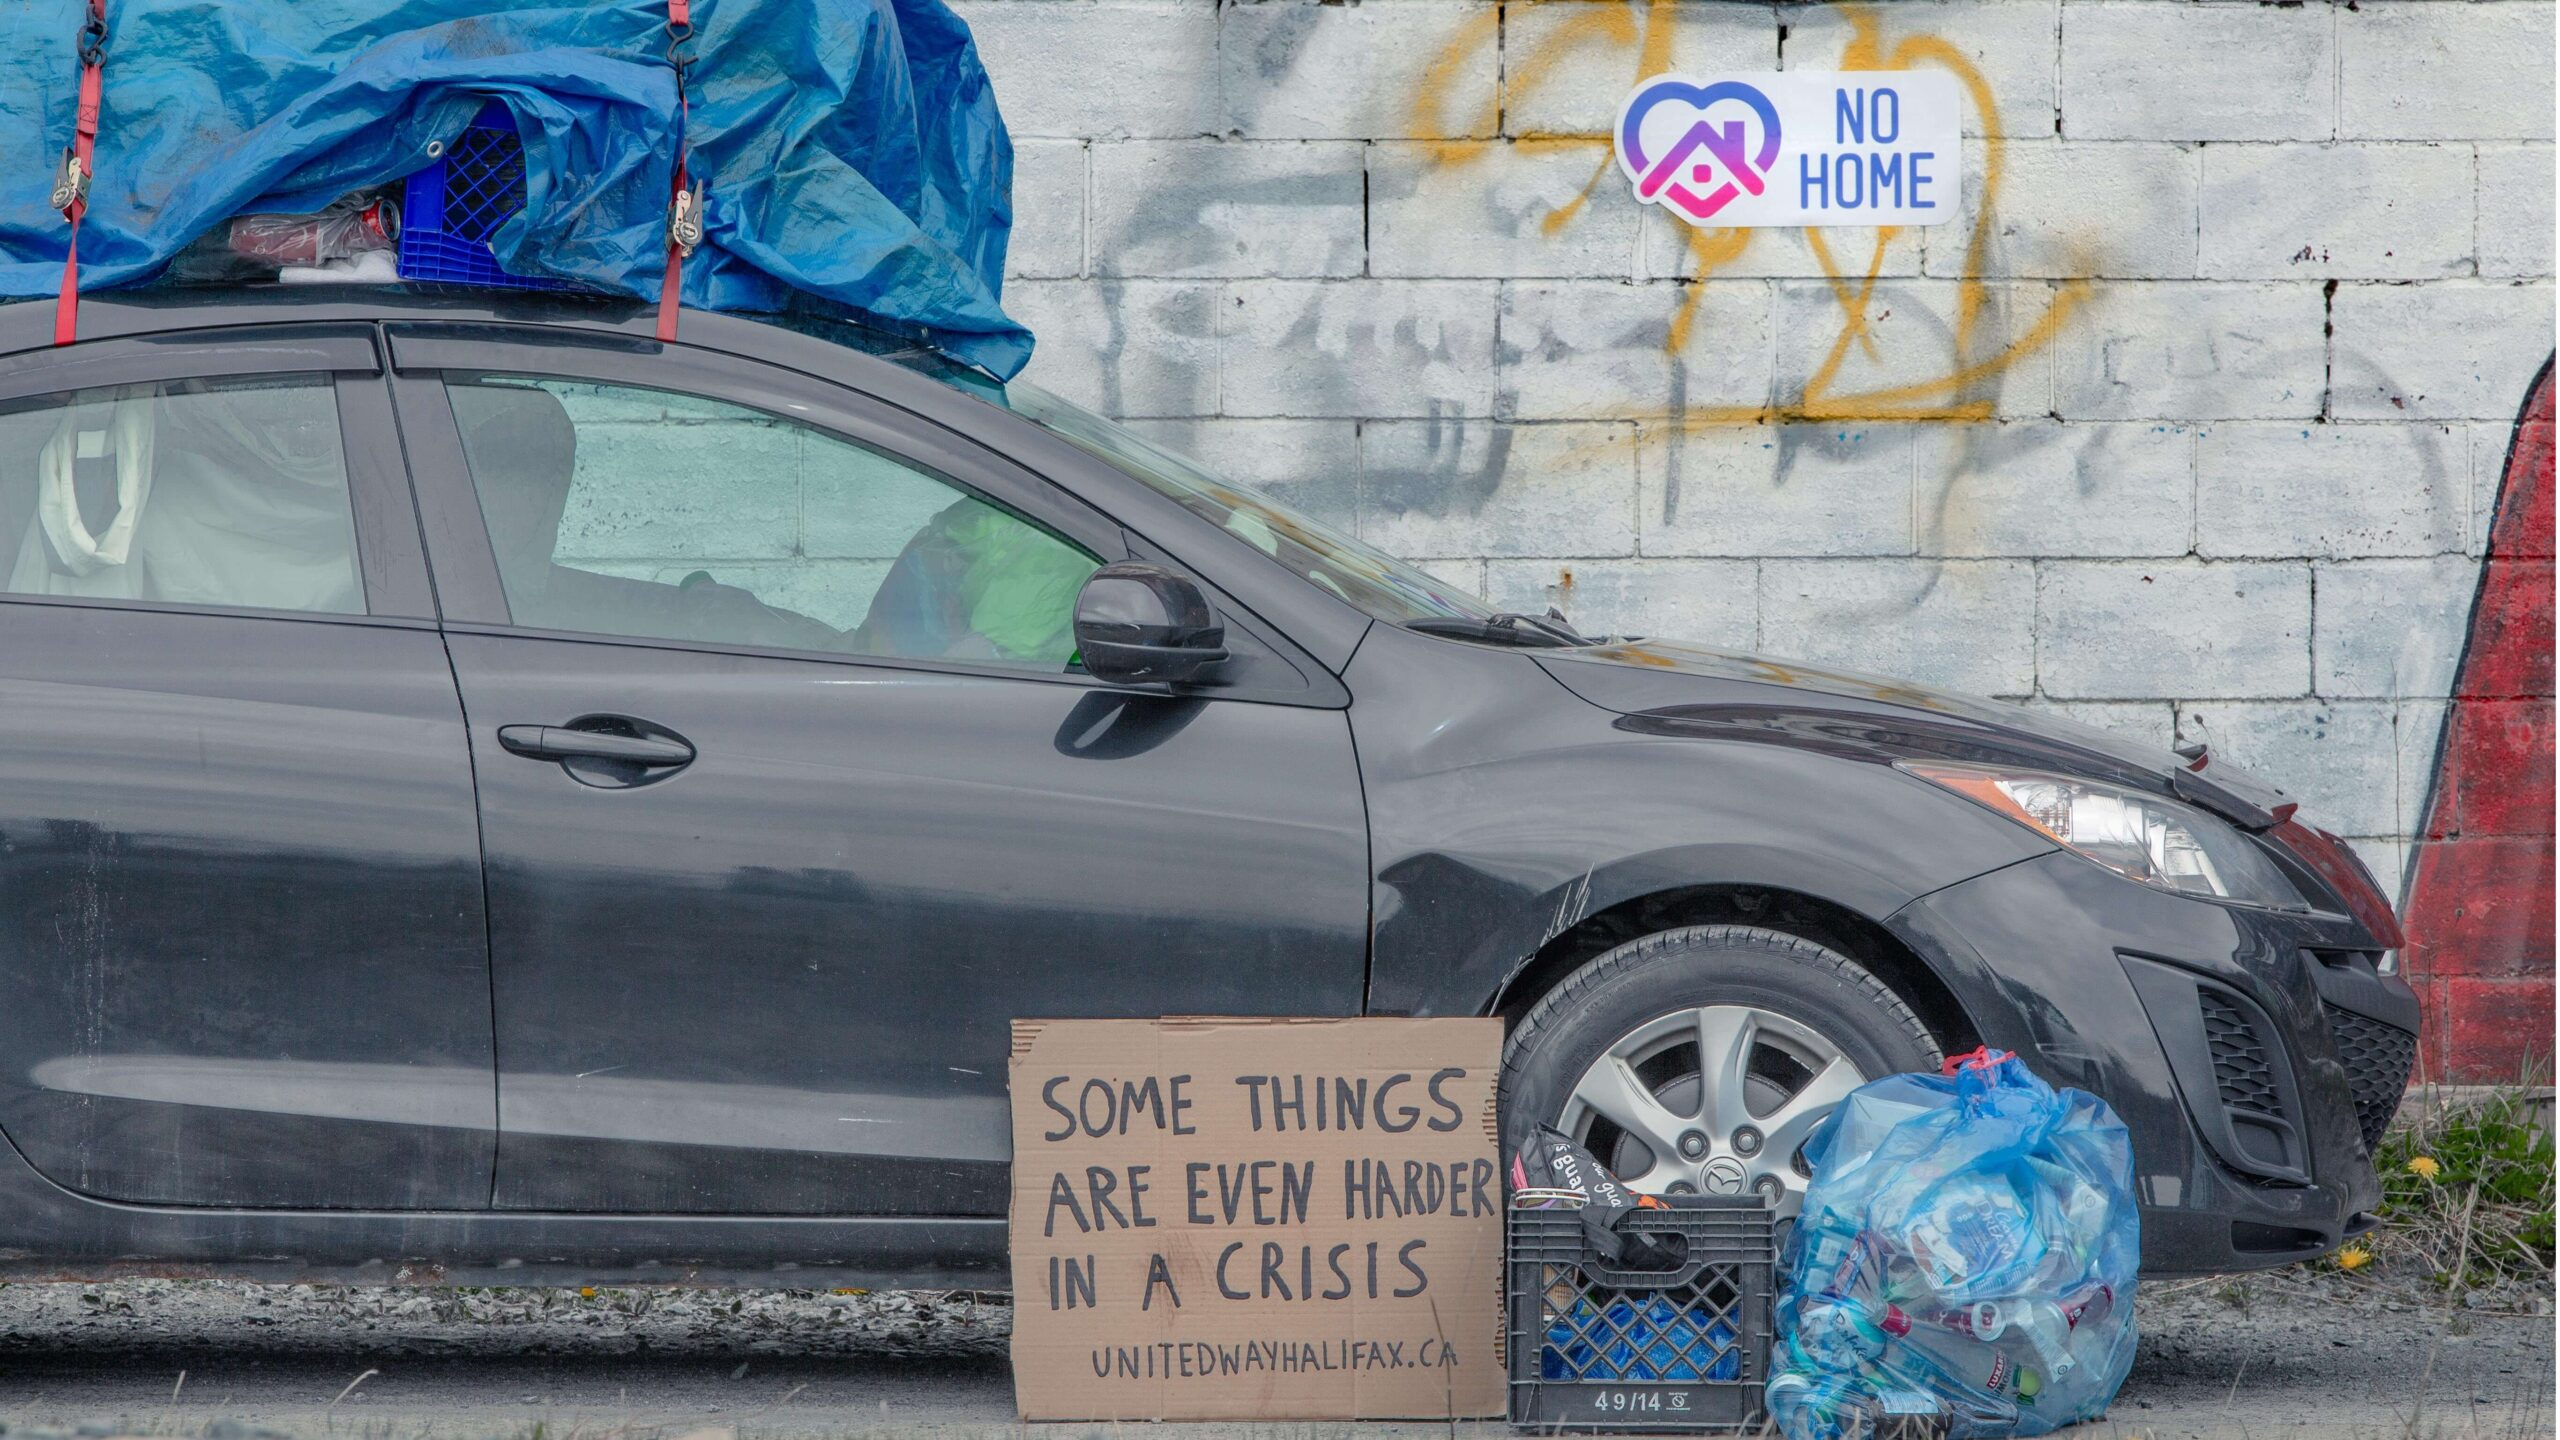 """A car with tarp covering belongings on the roof, and bags of recycling around it. Sticker on the graffitied wall behind says """"no home"""" and a cardboard sign says """"some things are."""" even harder in a crisis"""